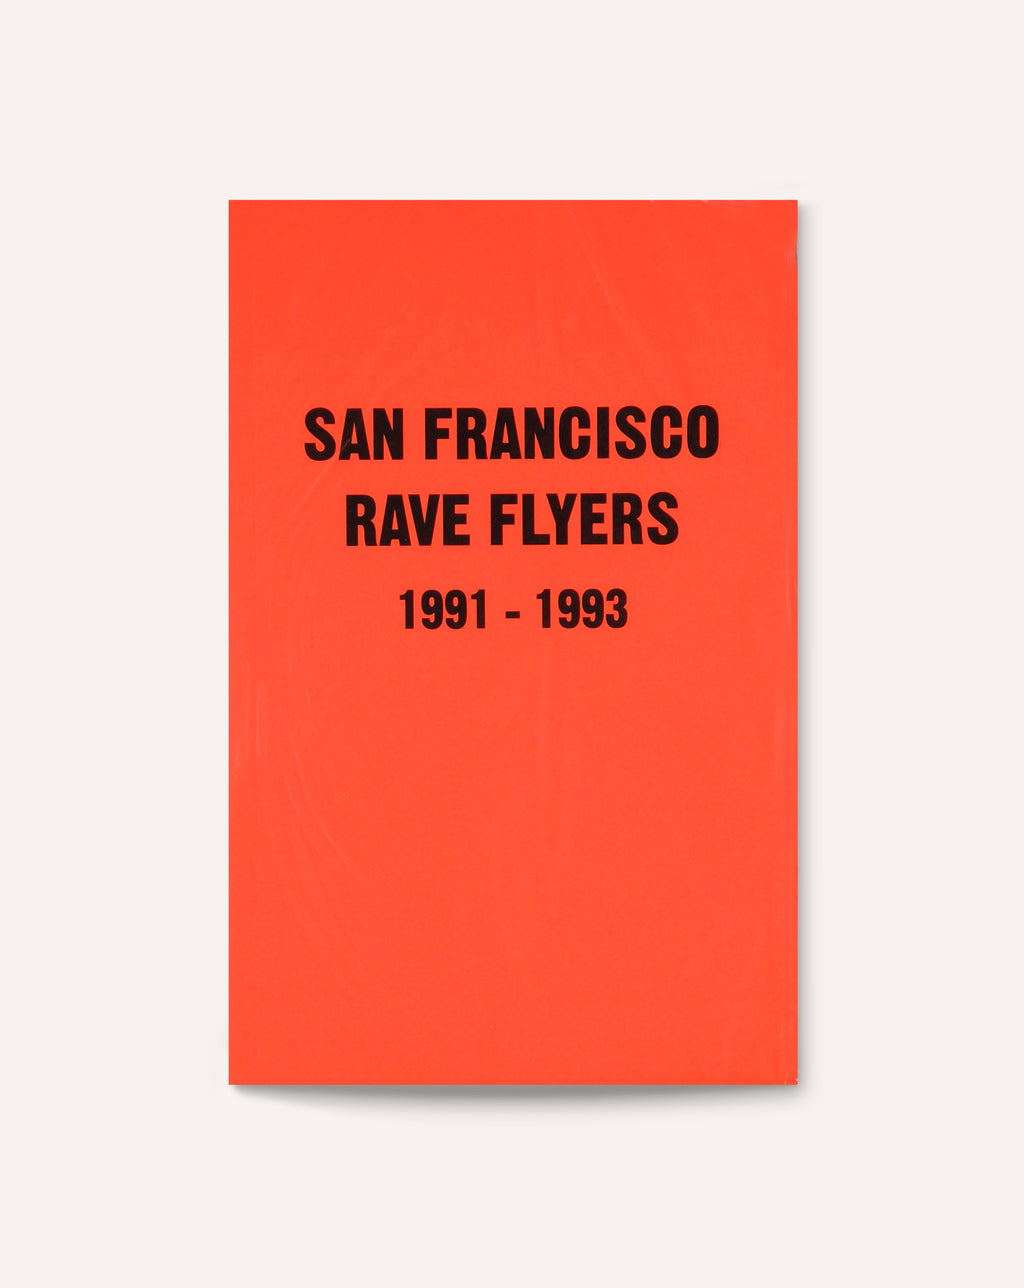 San Francisco Rave Flyers, 1991-1993